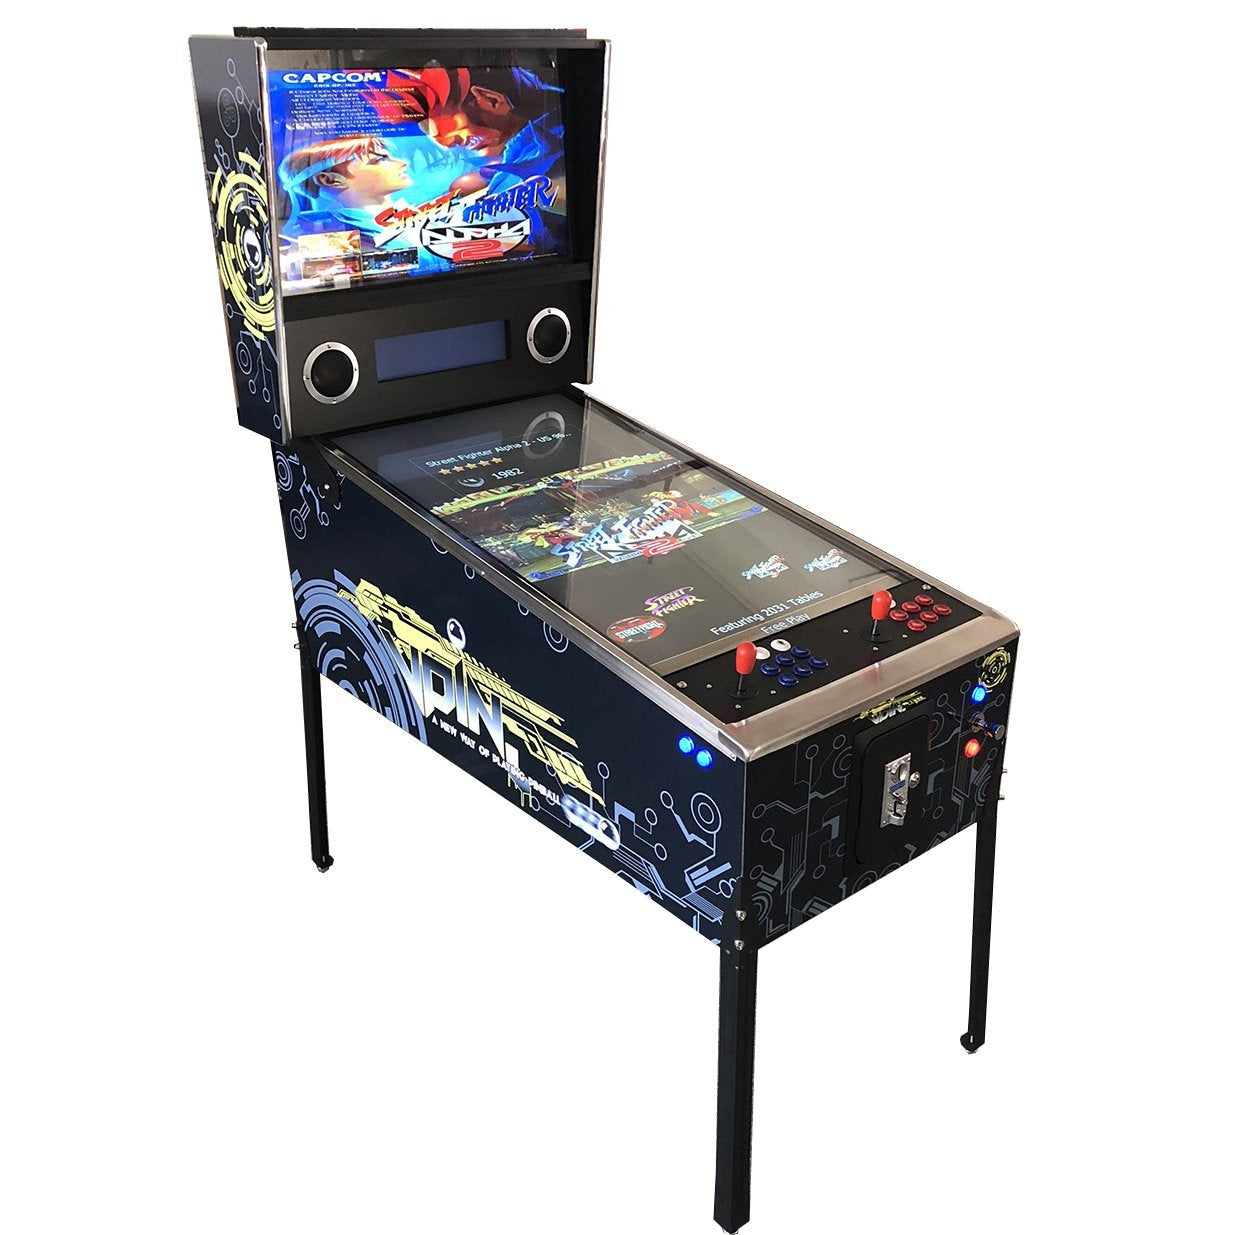 "2 Player Virtual Pinball Machine | (2 in 1) Combo 1031 Pinball Games and 998 Classic Arcade Games | 43"" and 32"" LCD Screens"